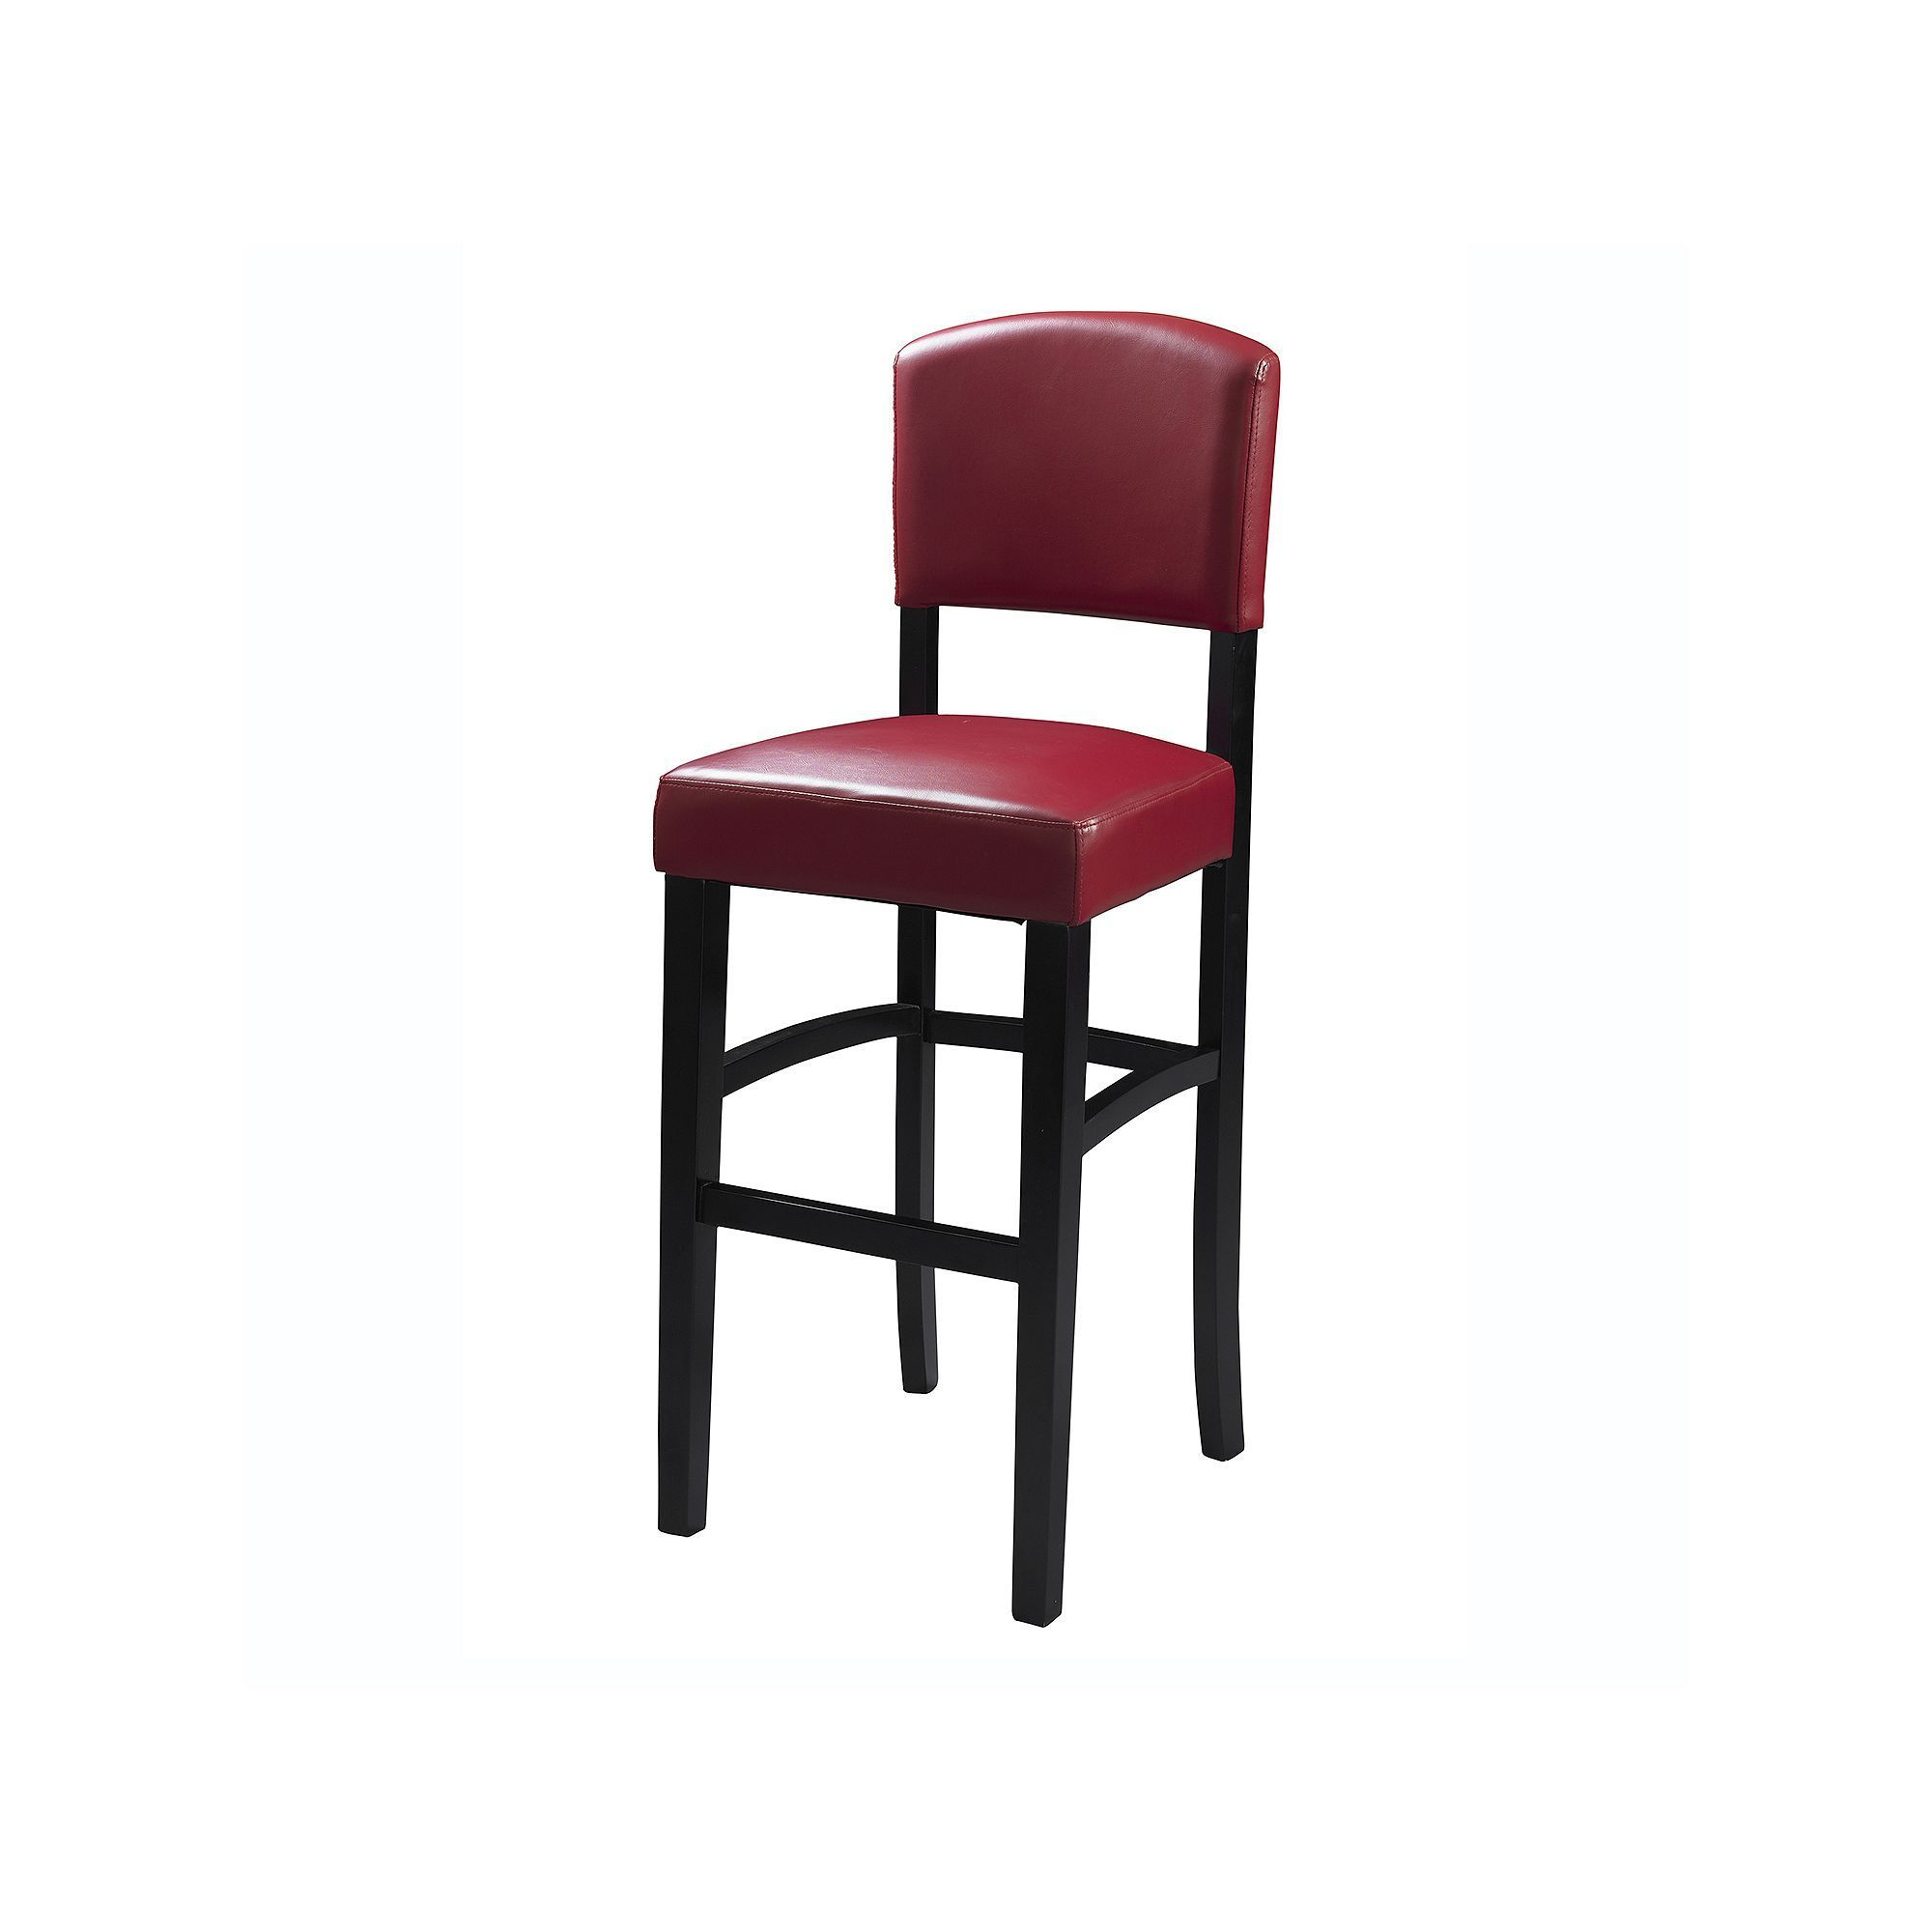 Linon Monaco Red Counter Stool Products Counter Stools Counter